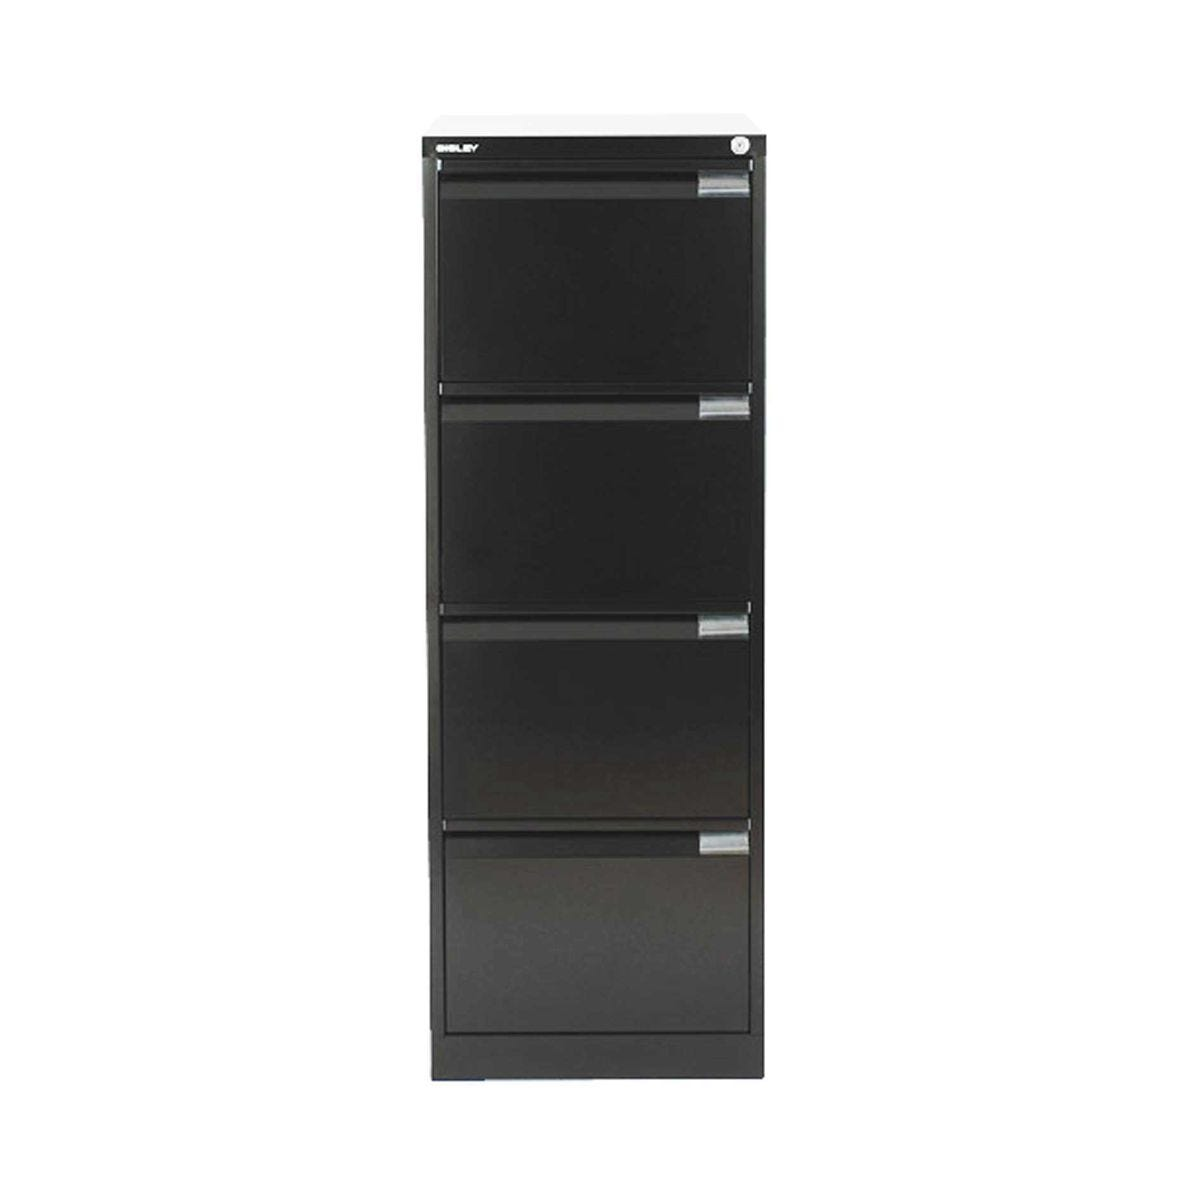 Bisley Filing Cabinet BS4E 4 drawer H1321xW470xD622mm Steel, Black